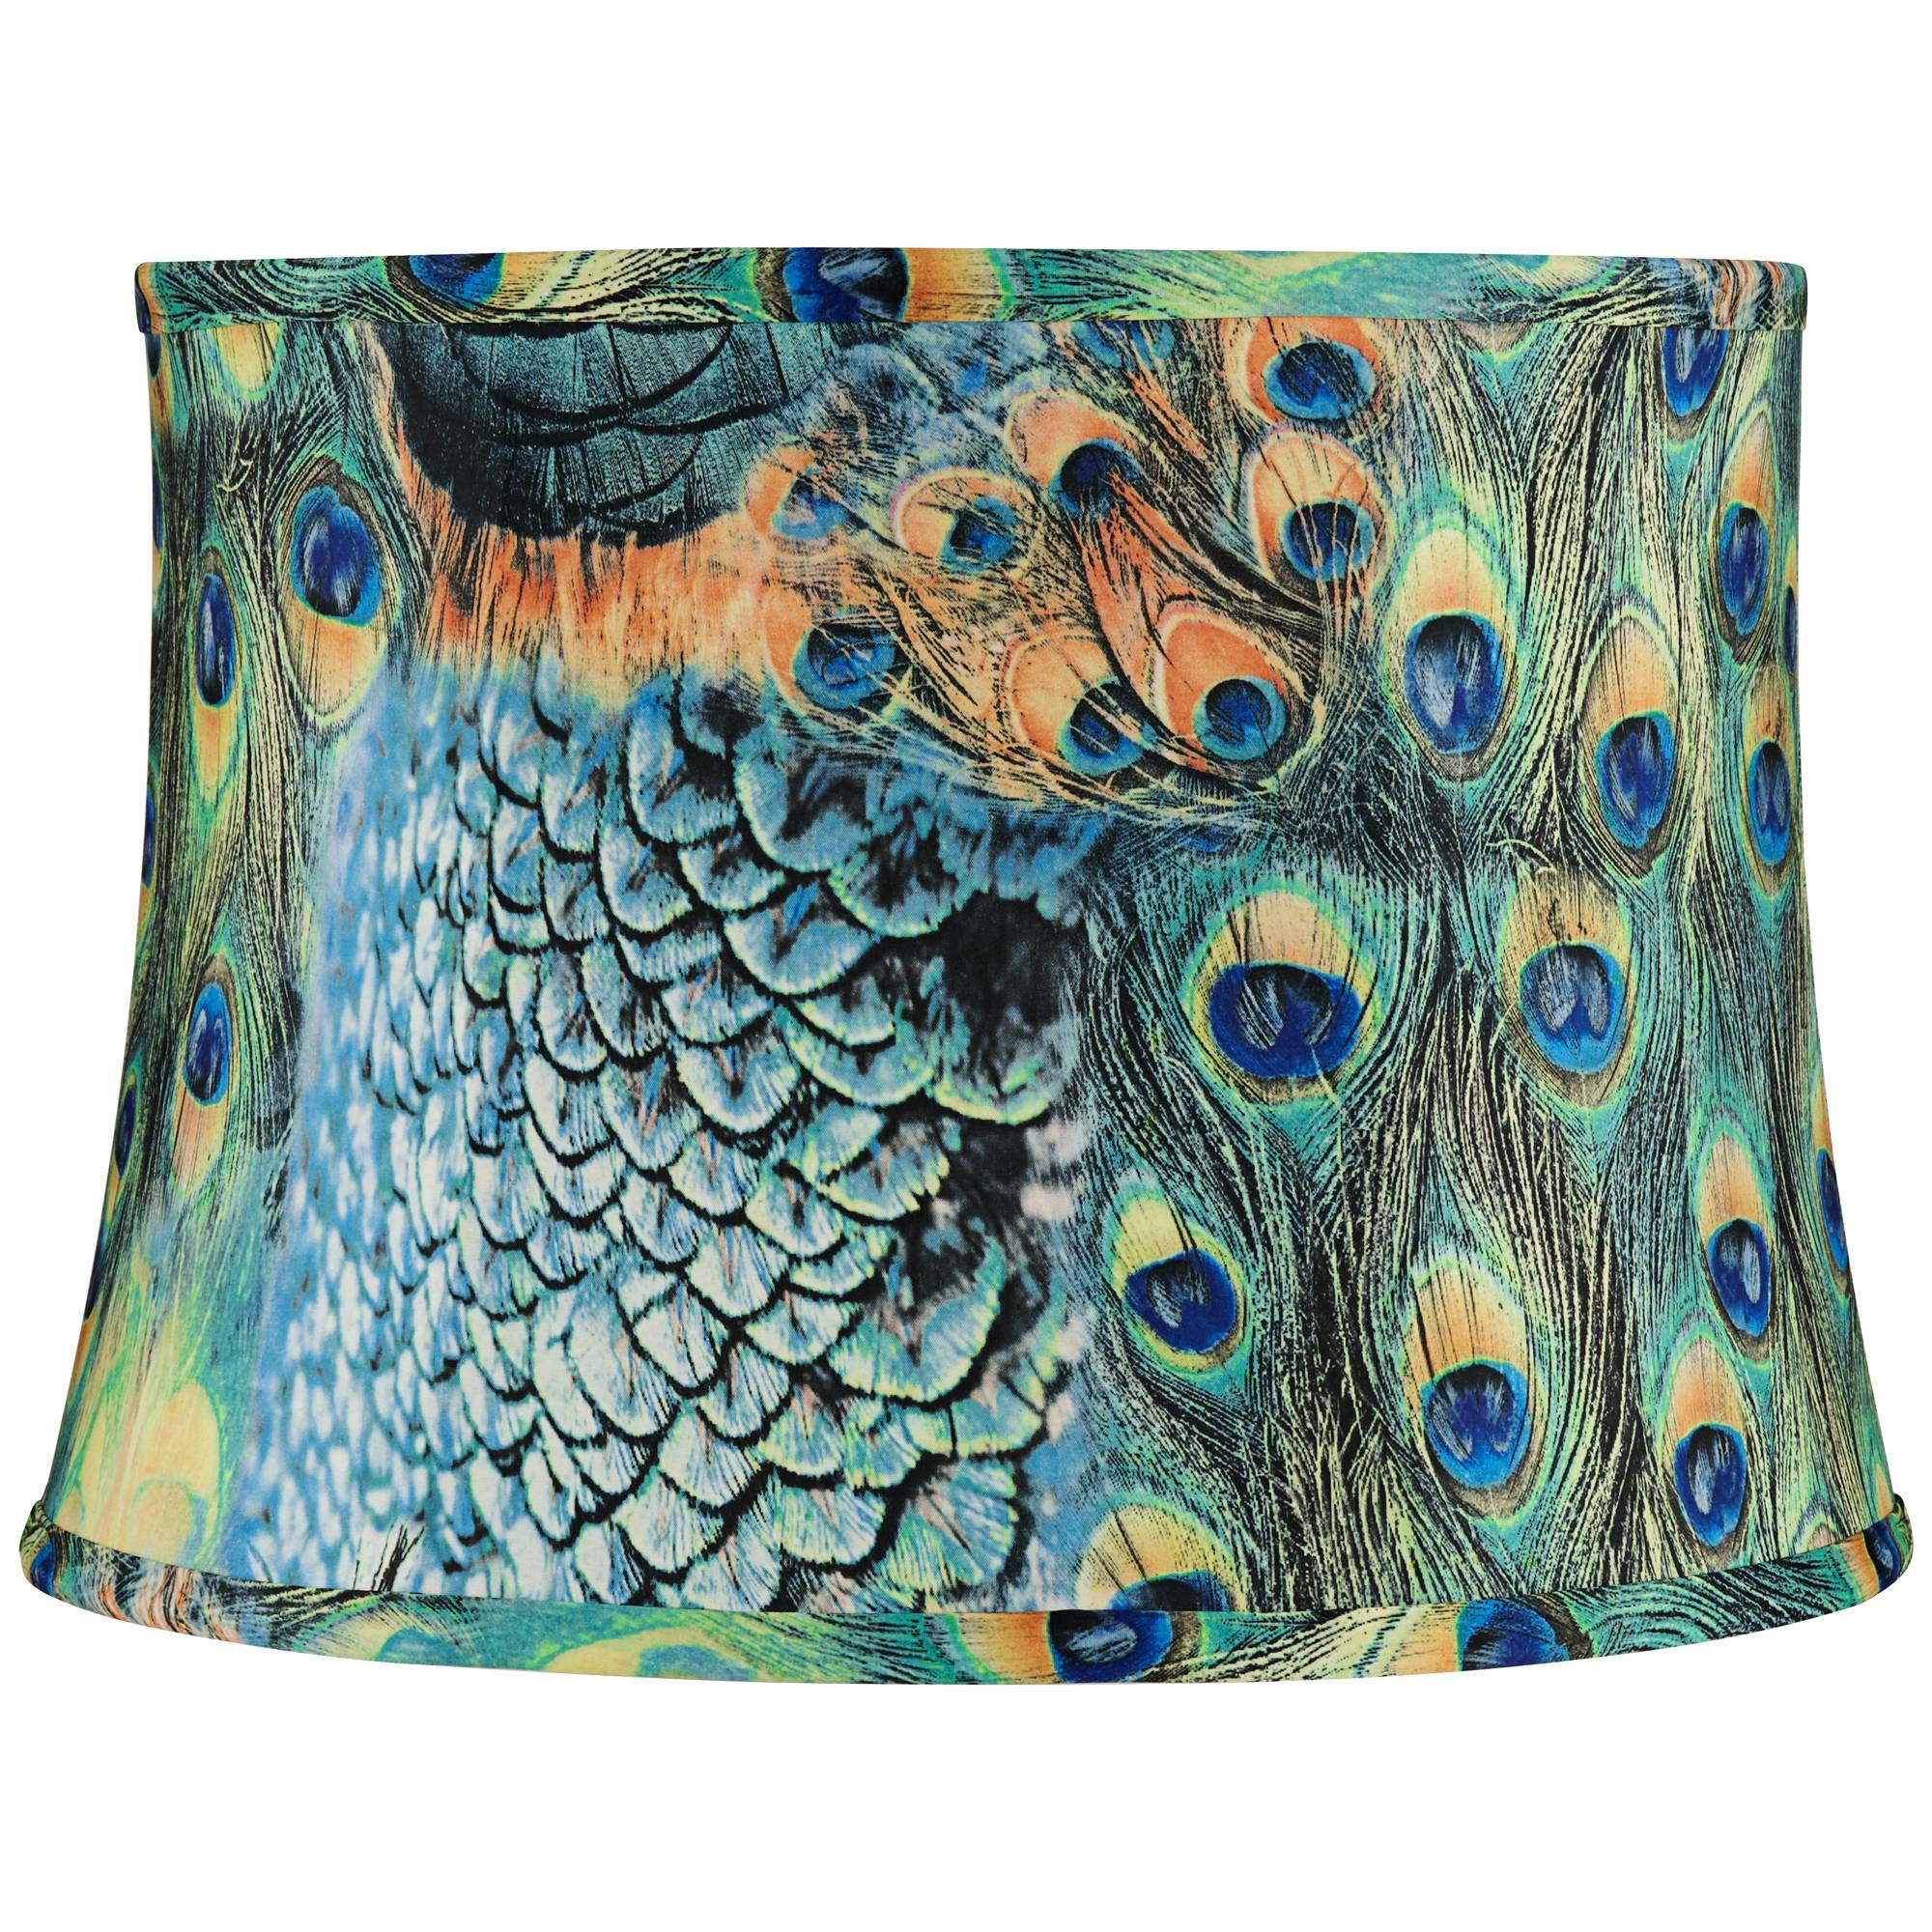 Peacock Drum Lamp Shade Cotton Fabric with Harp 14x16x11 (Spider) - Springcrest by Springcrest